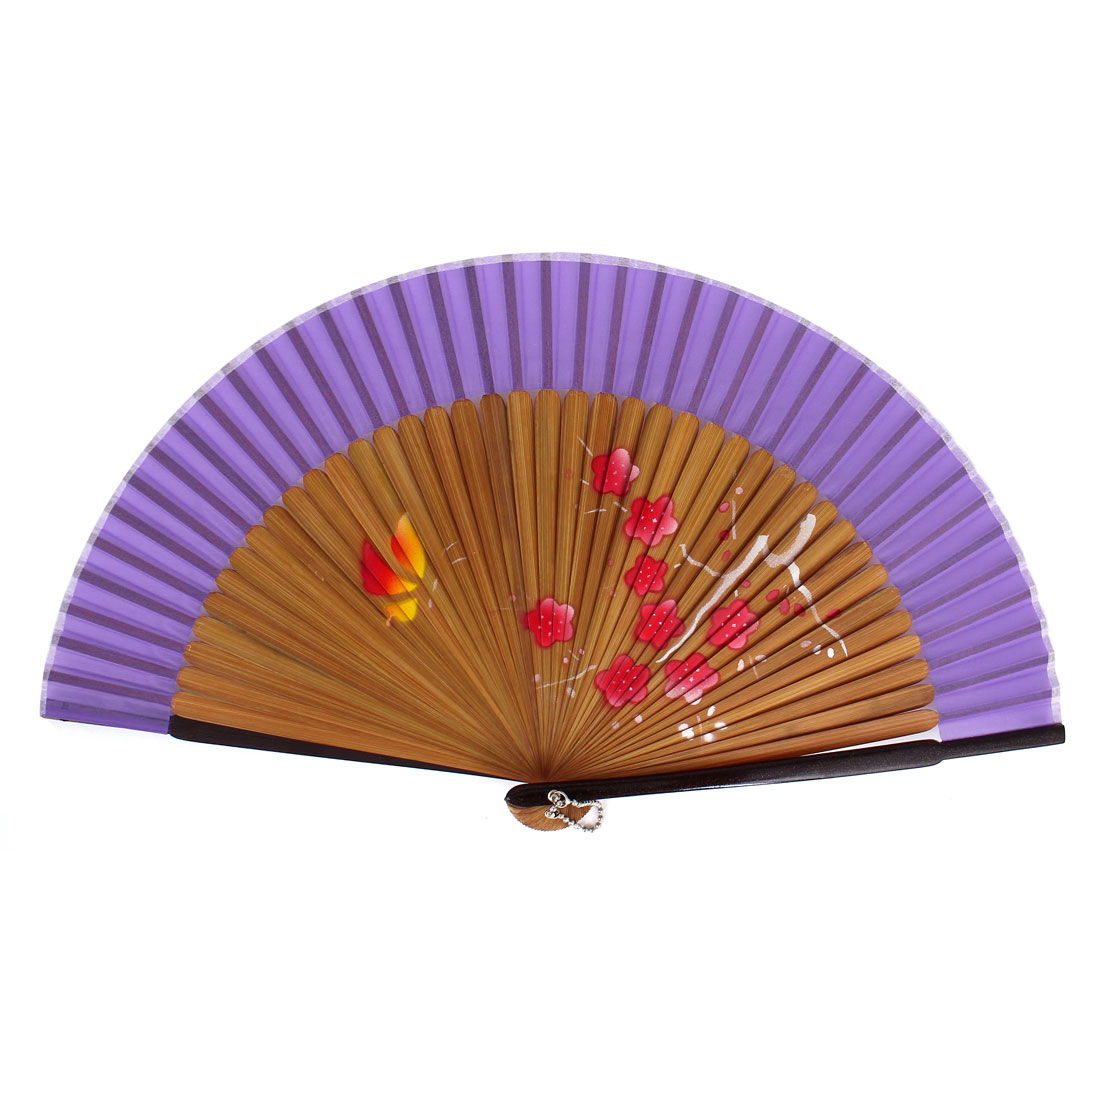 Chinese Style Red Flower Print Bamboo Handheld Folding Hand Fan Purple Yellow